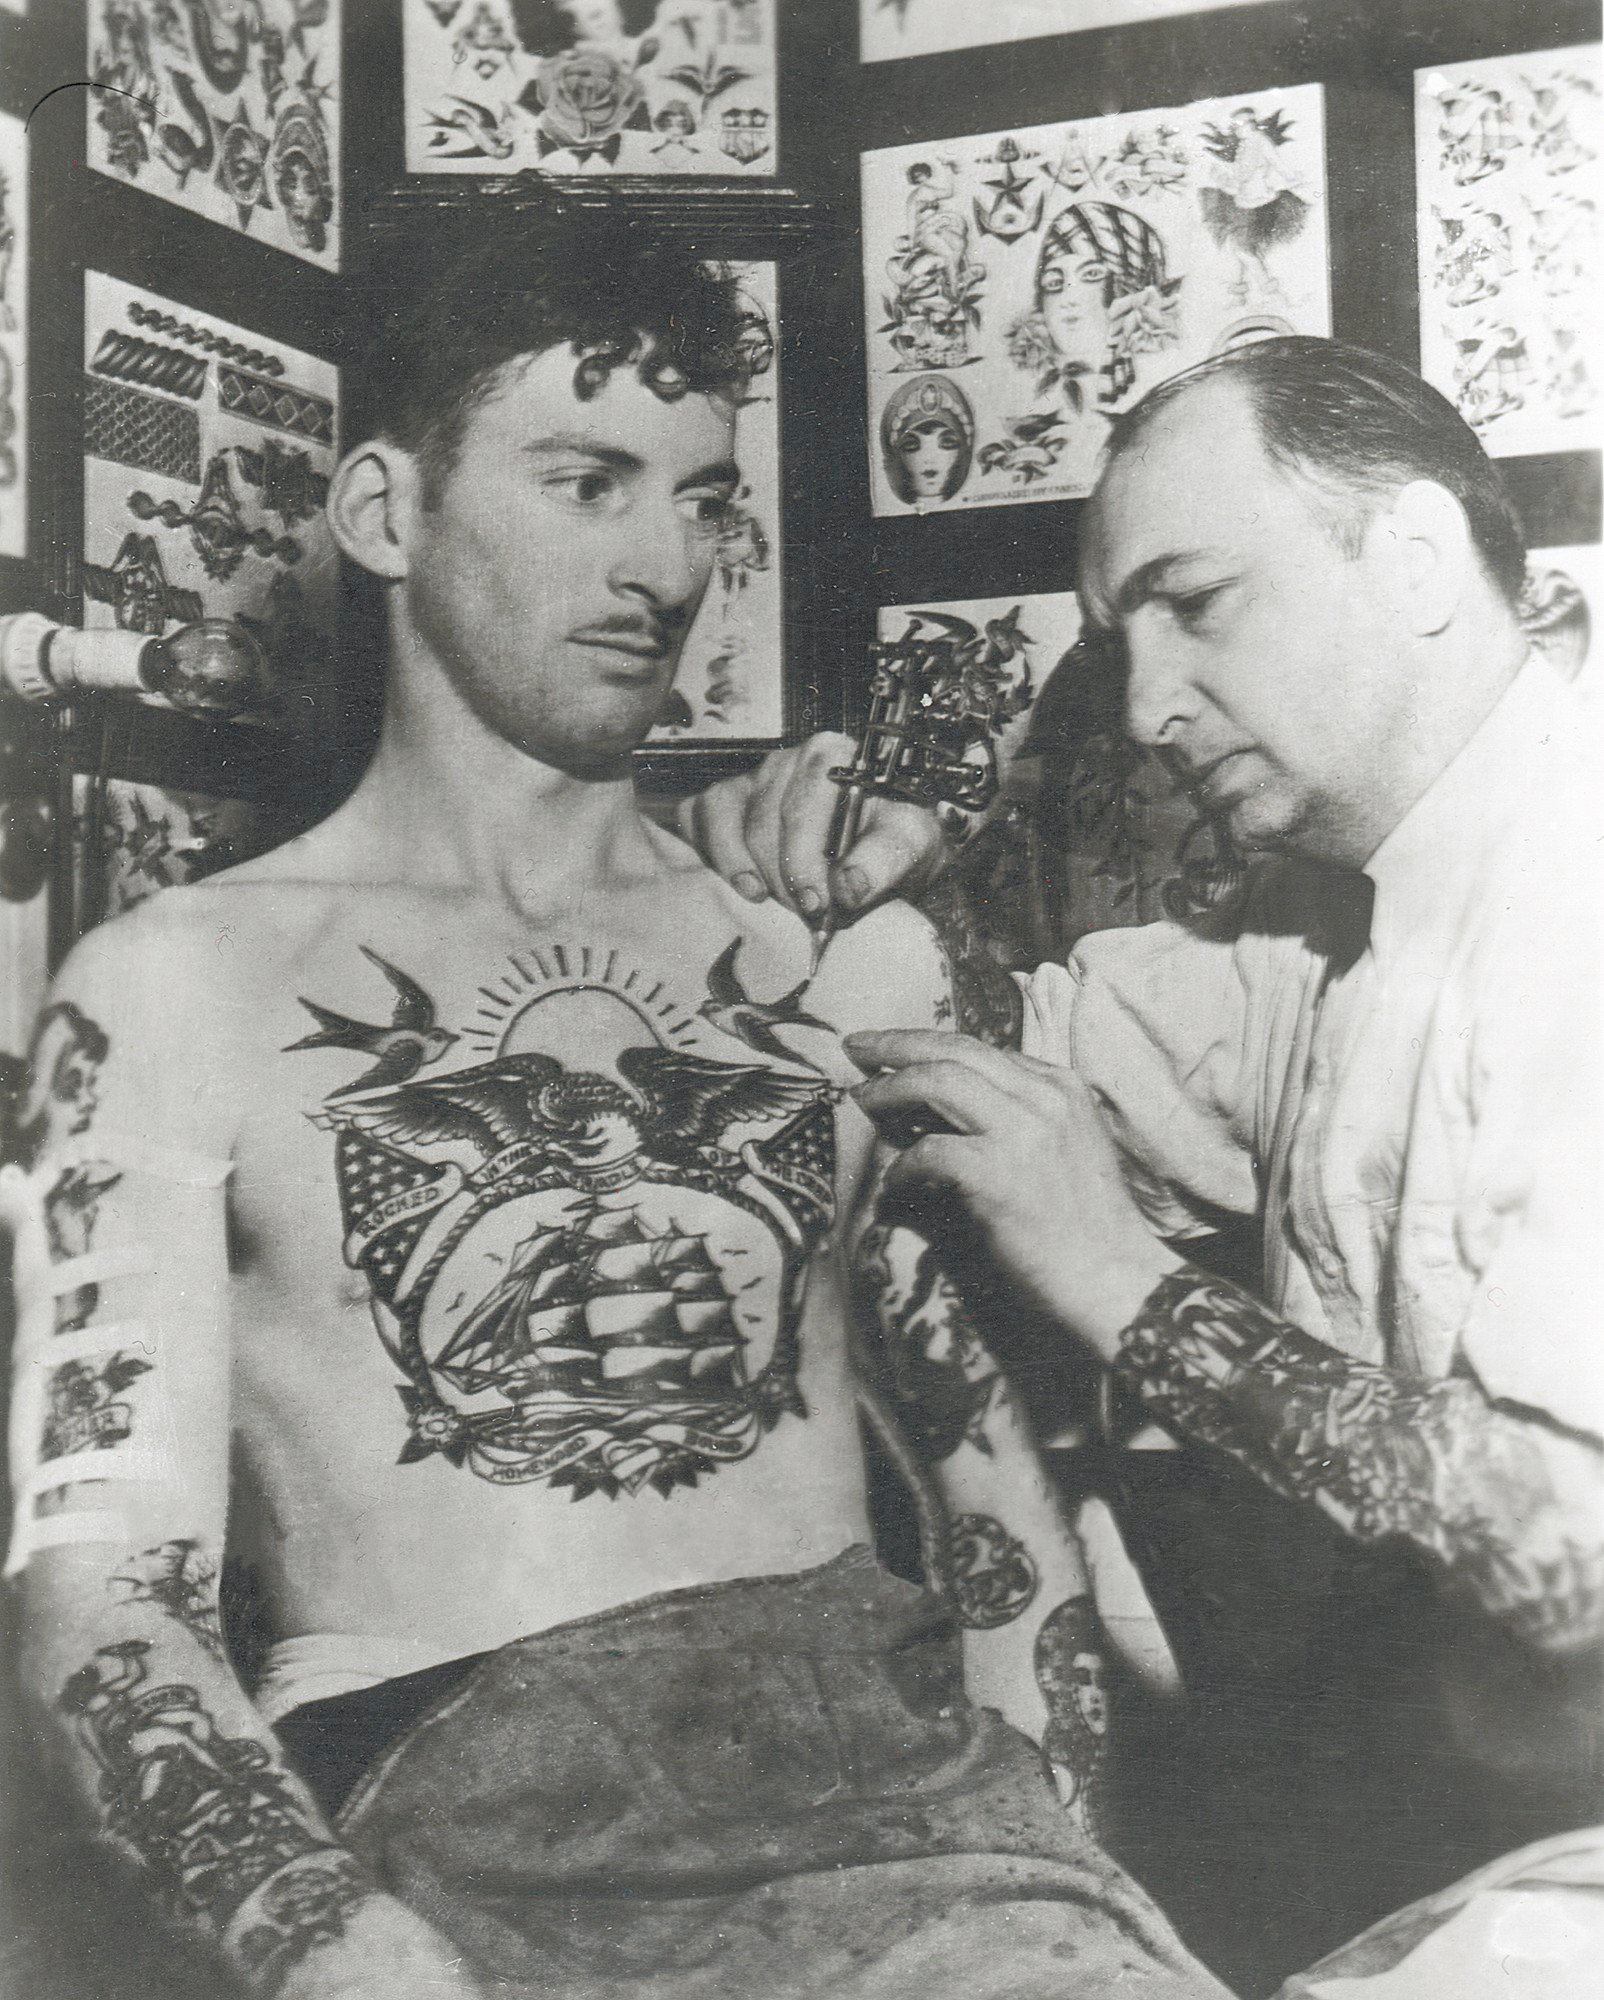 Owen Jensen tattooing